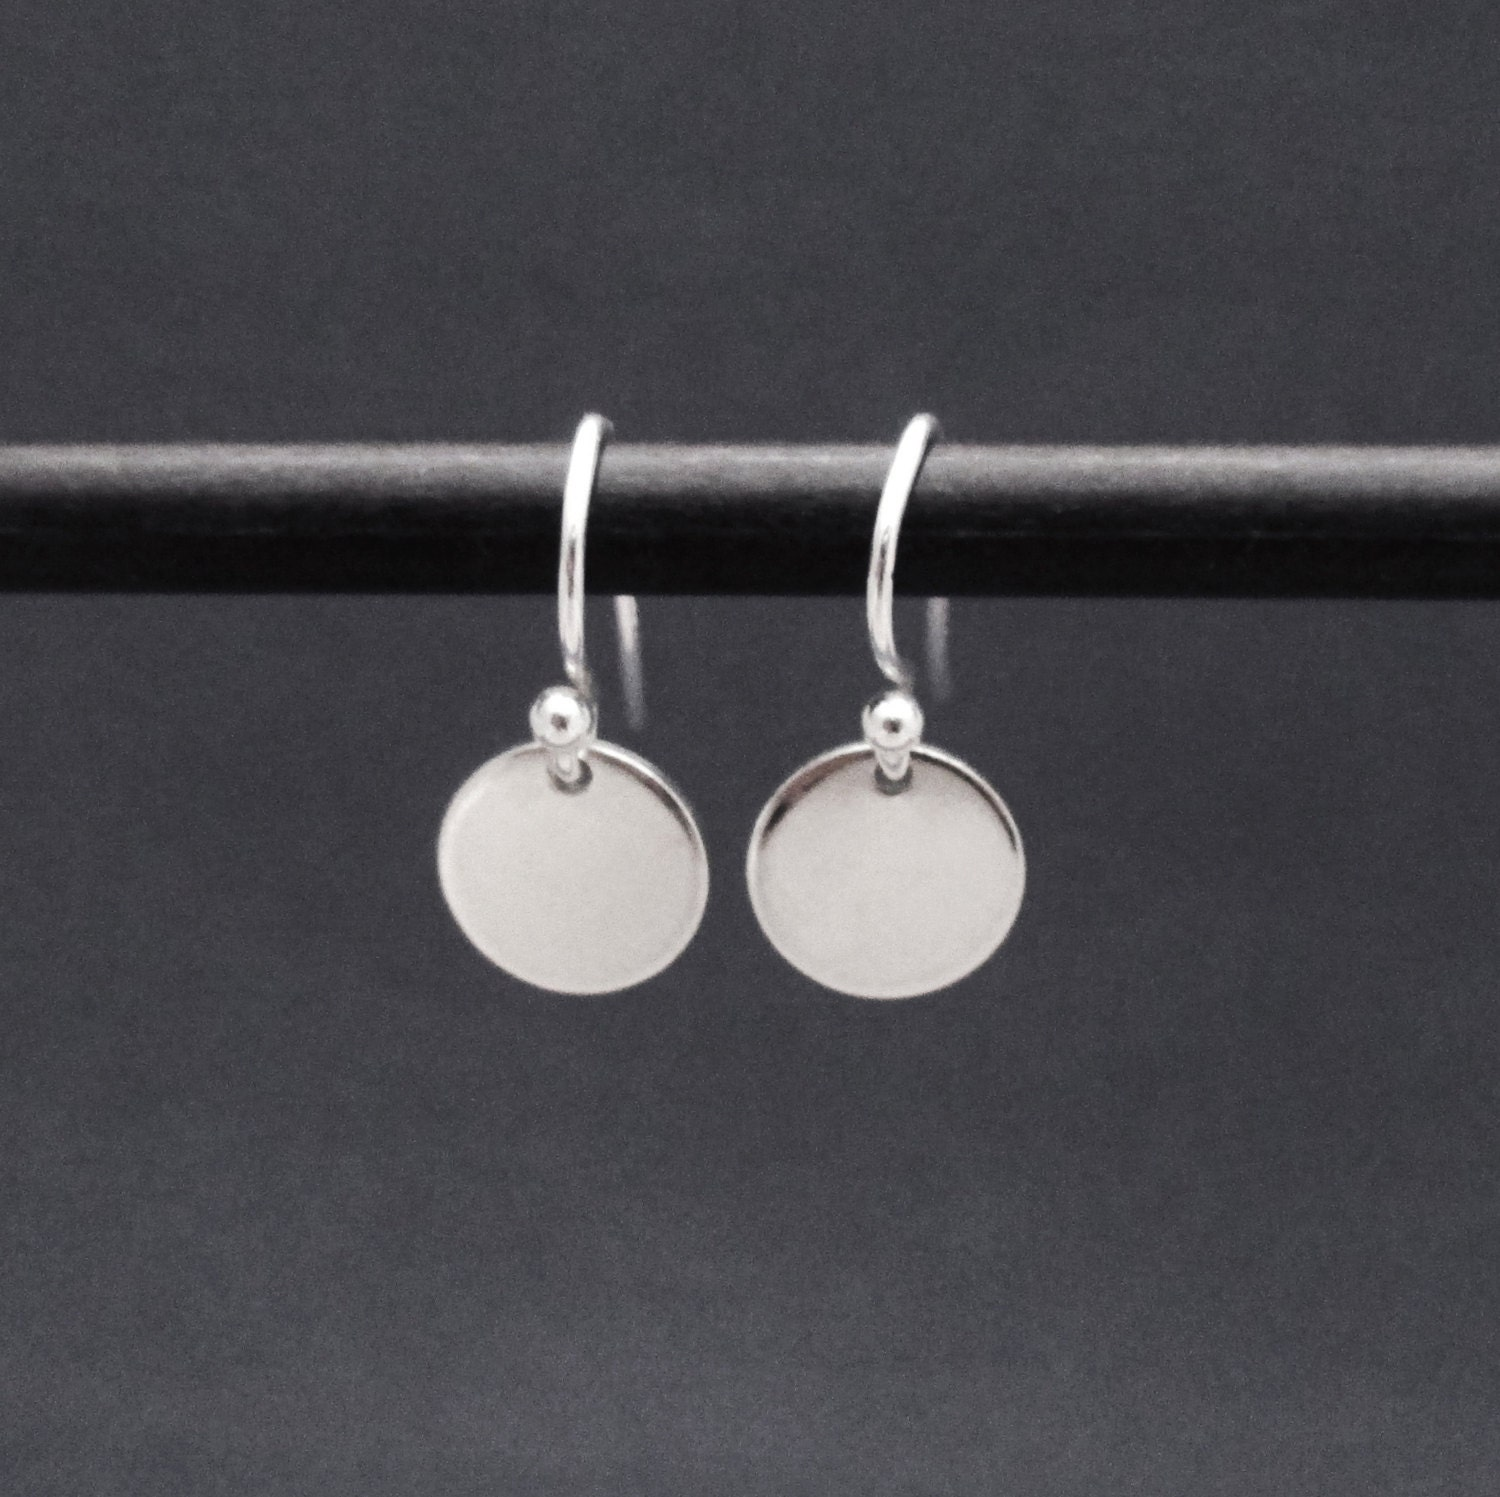 Disk Silvers: Tiny Sterling Silver Disc Earrings Small Circle Drop Dangle